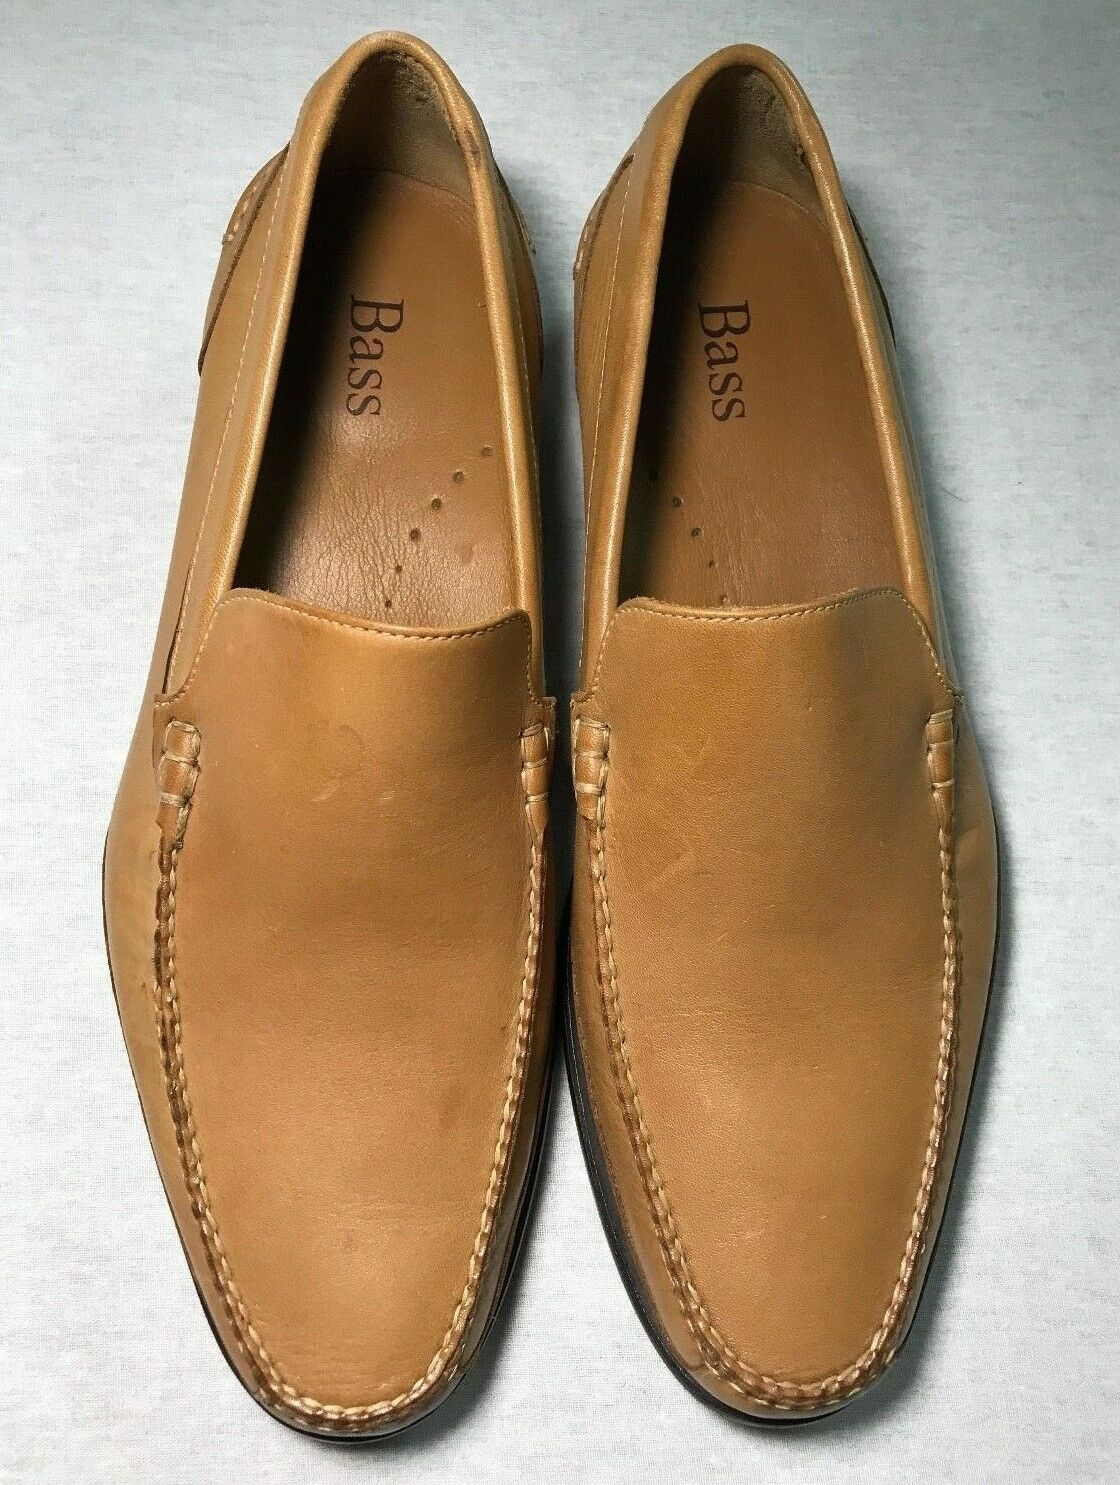 G.H. BASS WEEJUNS Rare Cream Farbe Leather Loafers 10 M